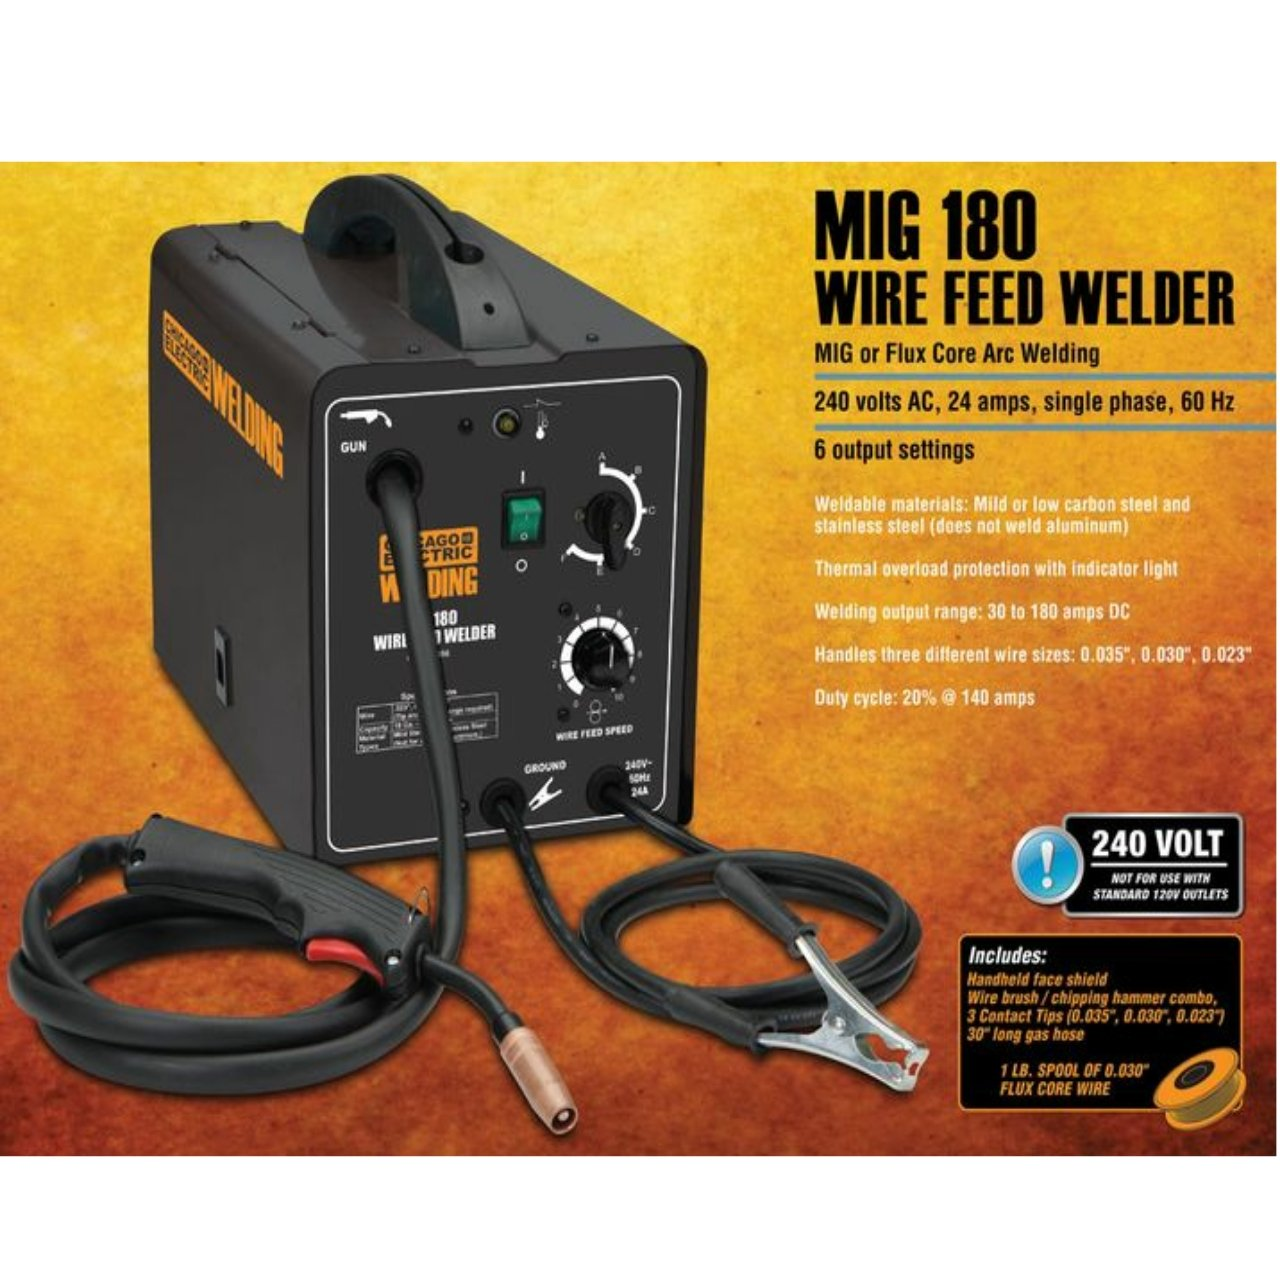 Chicago Electric Welding Systems 180 Amp MIG/Flux Wire Feed Welder - Mig  Welding Equipment - Amazon.com